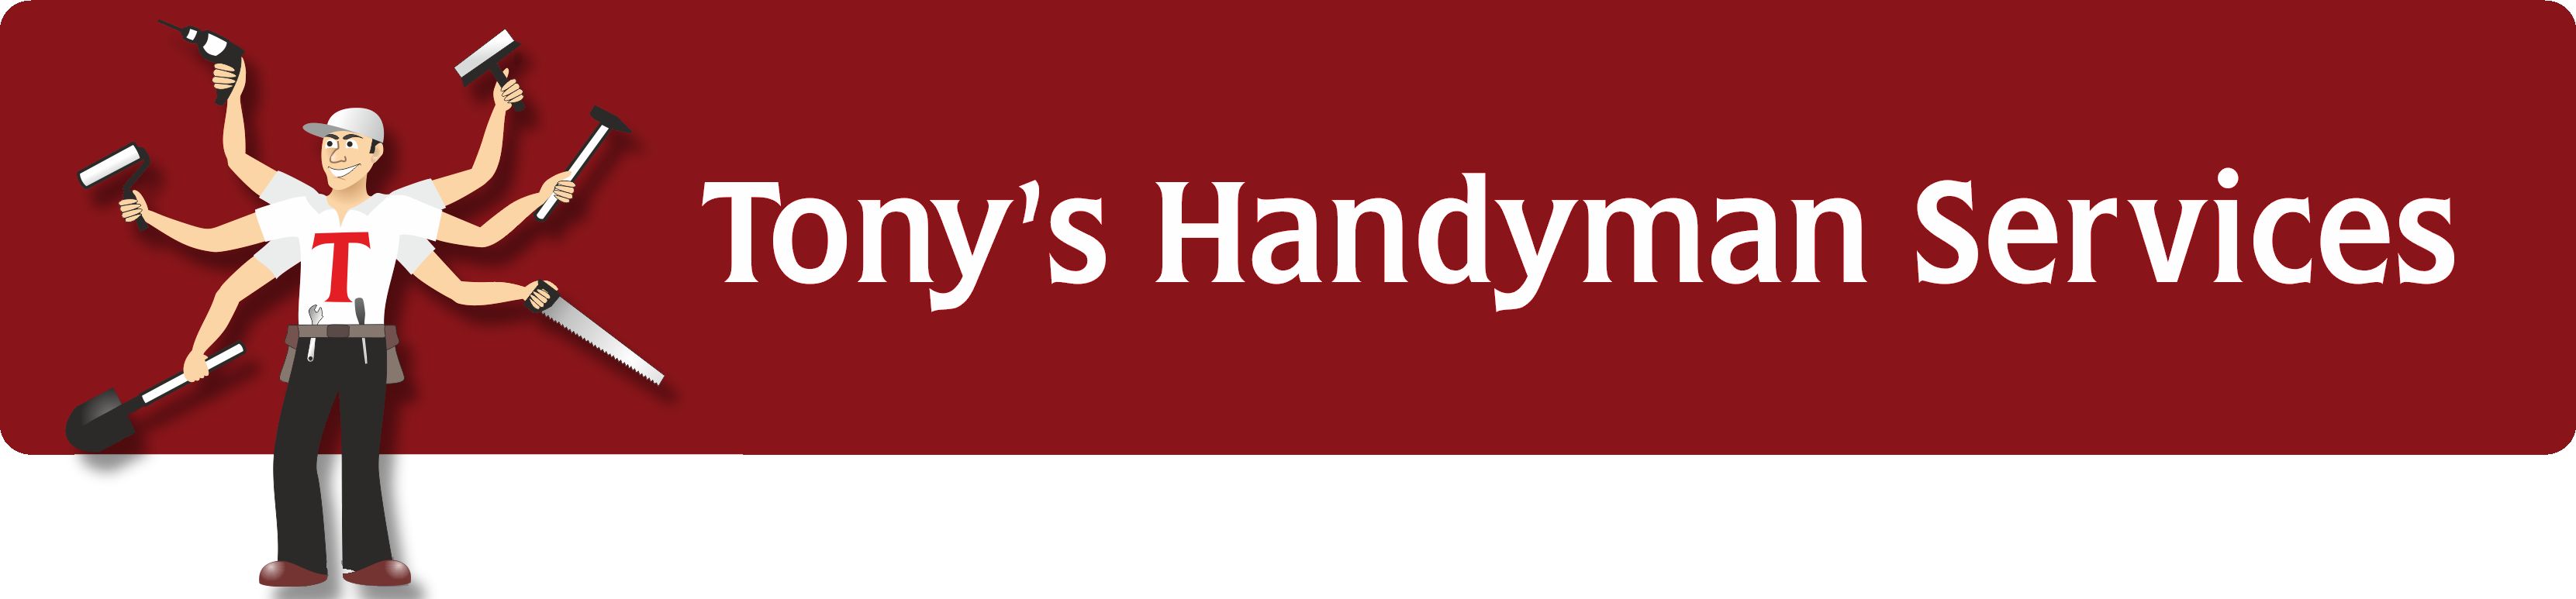 Handyman Services- Decorating, Electrical, Plumbing | Tony's DIY